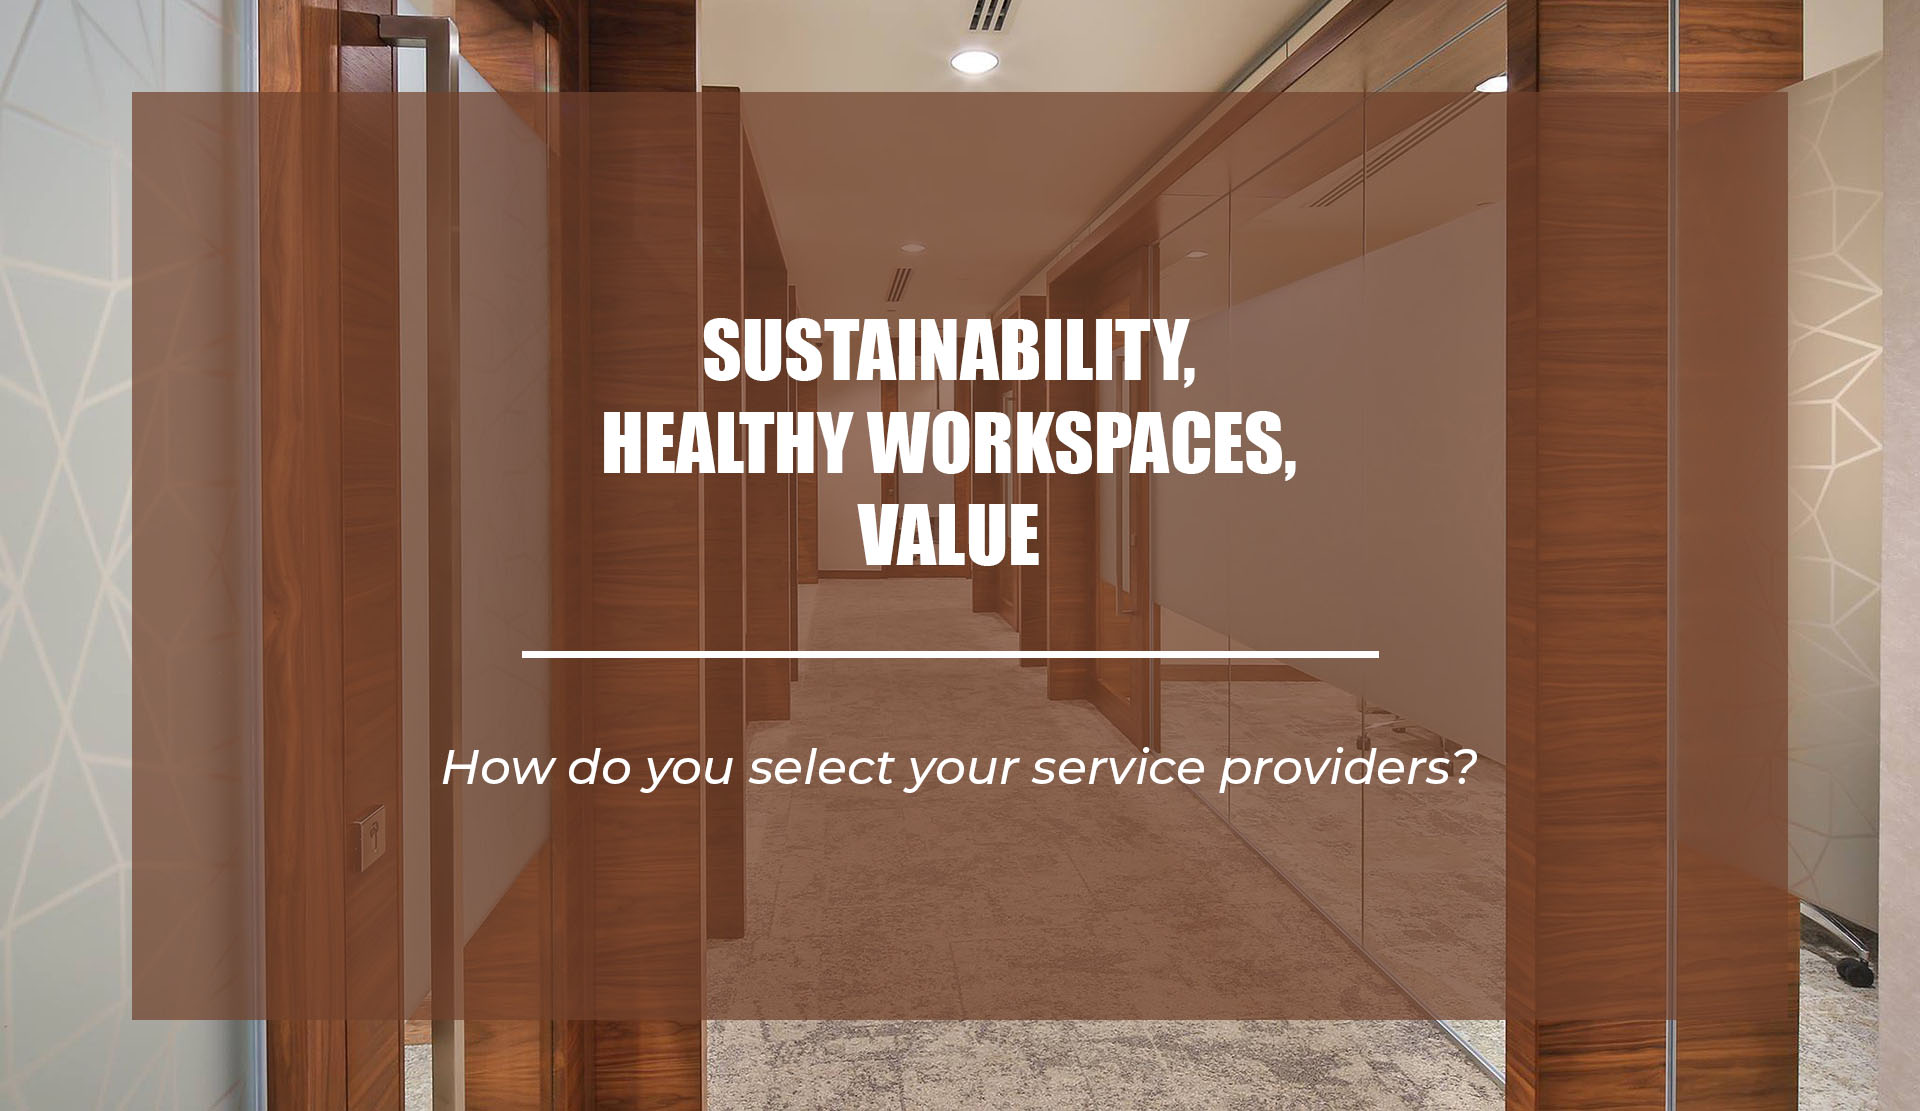 Sustainability, healthy workspaces, value: how do you select your service providers?